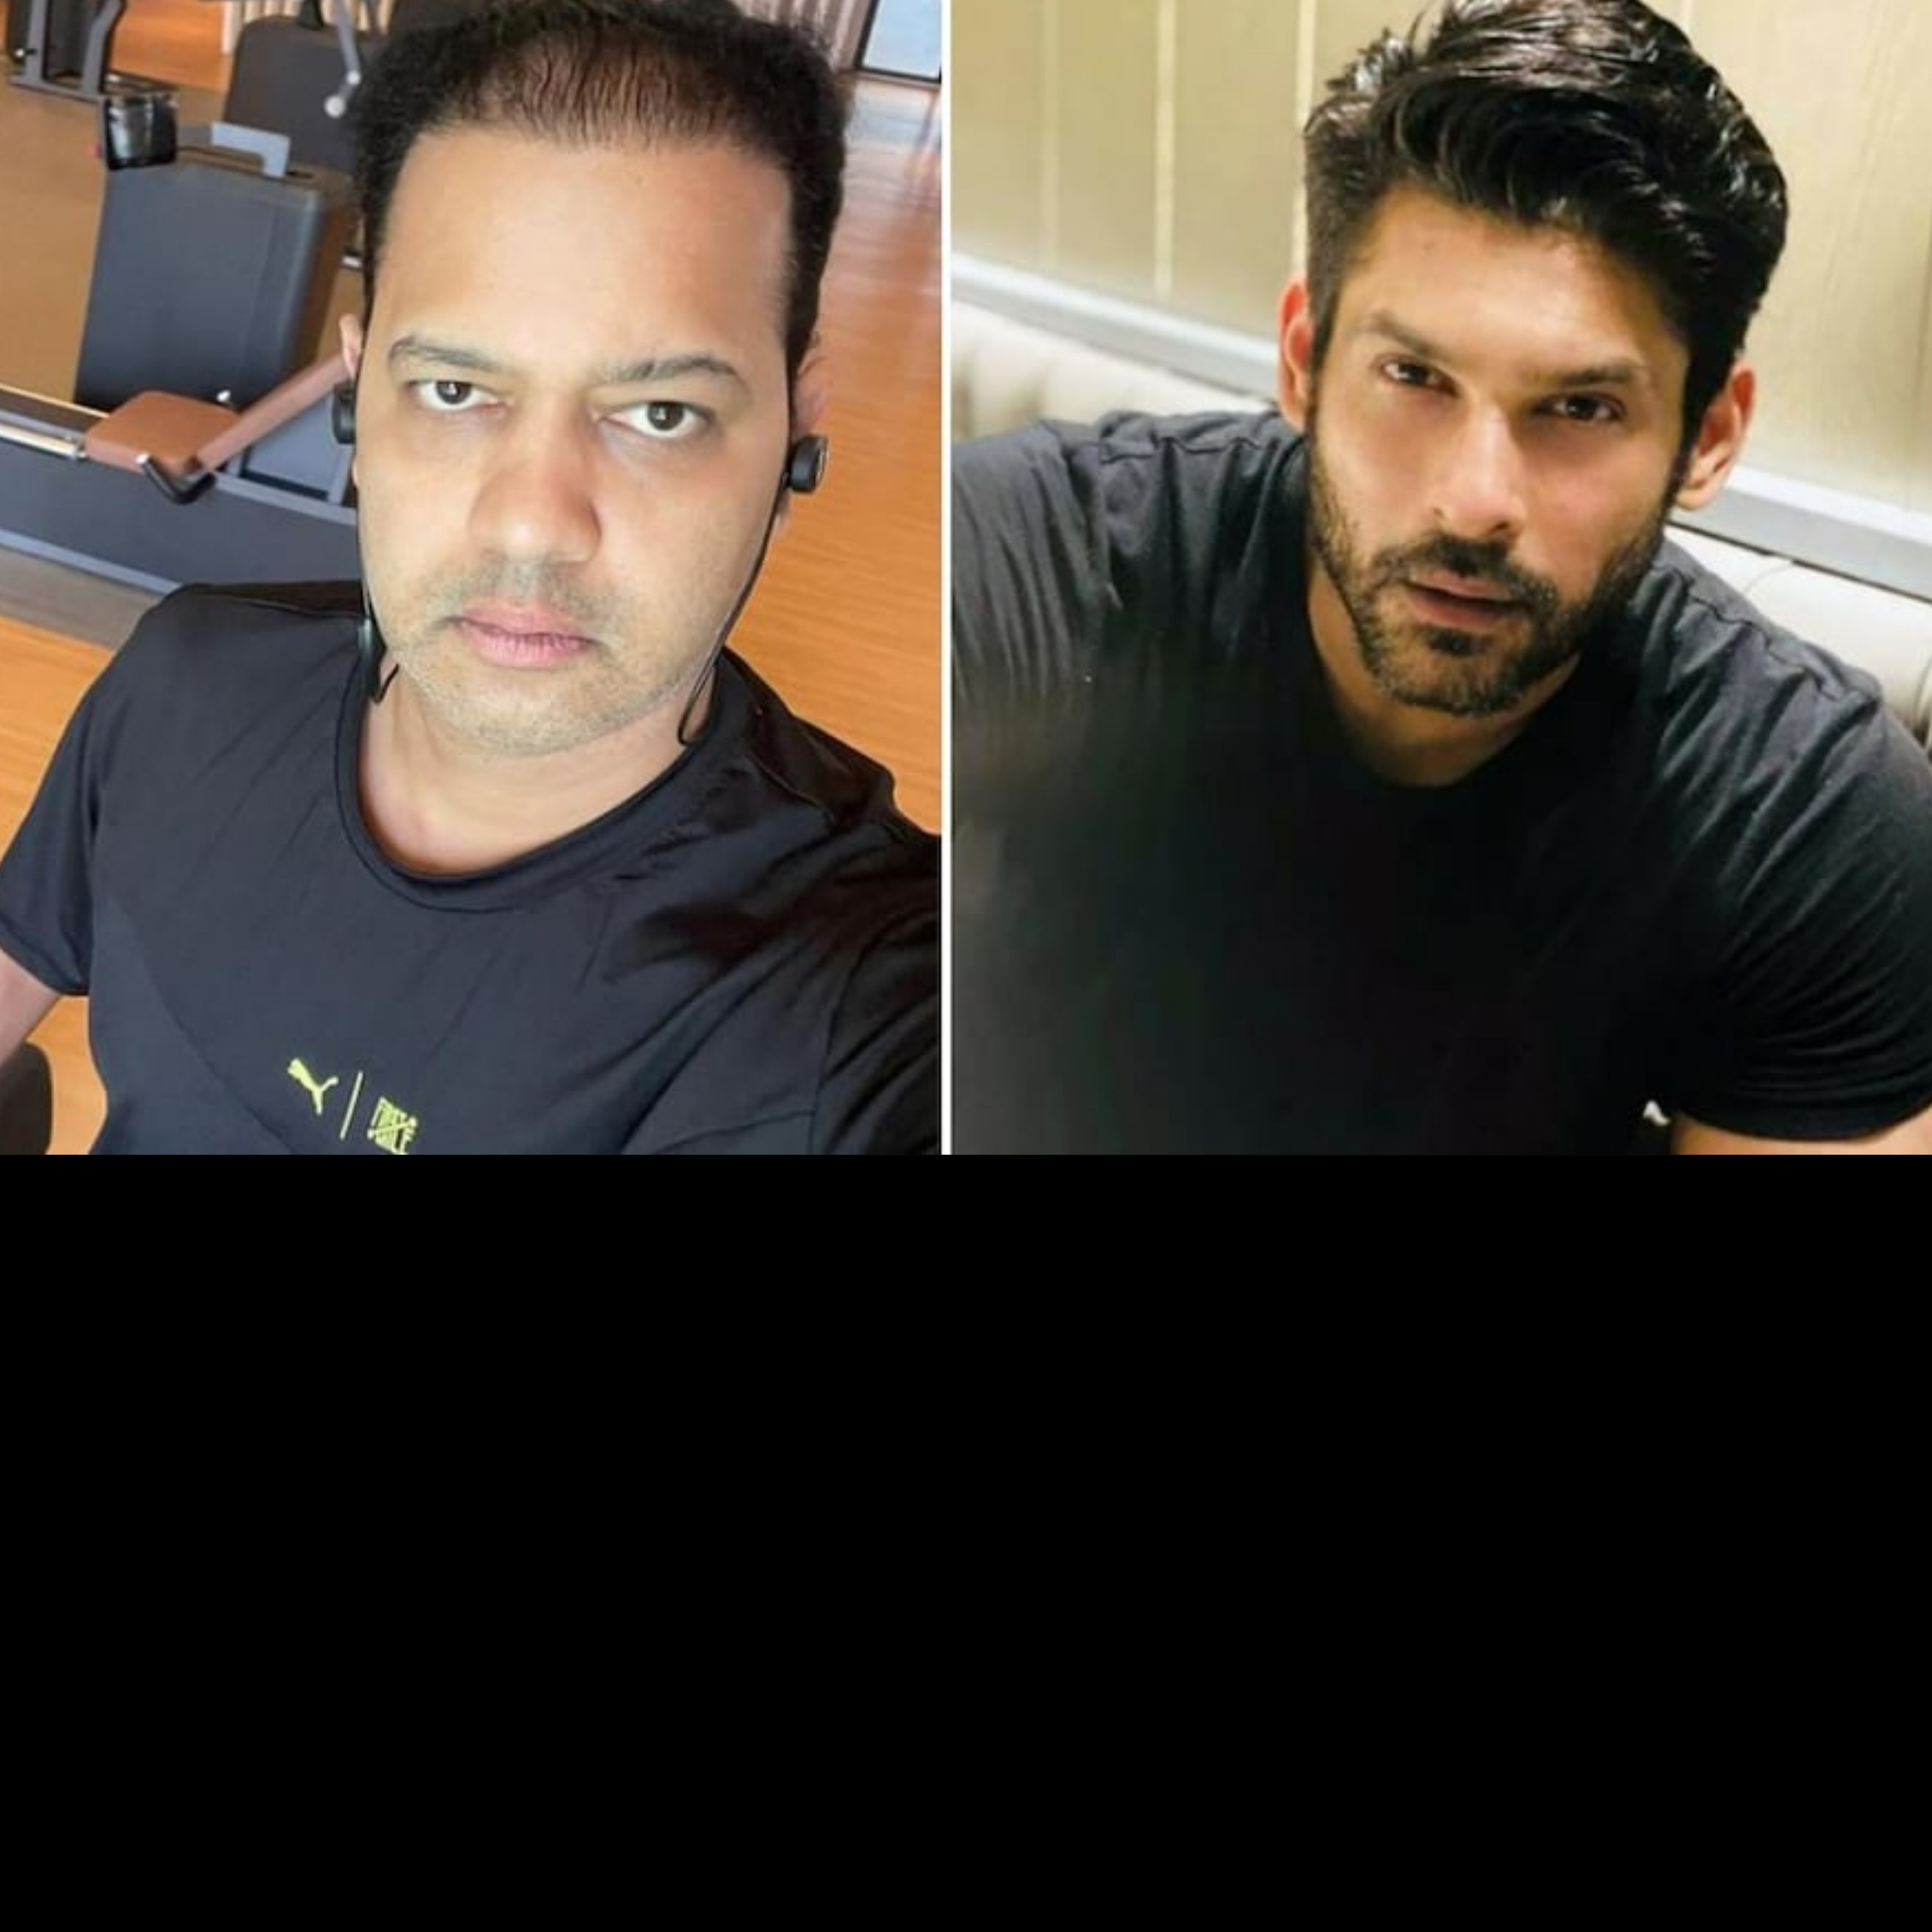 Rahul Mahajan Is Yet To Come Terms With Sidharth Shukla's Death; Says, 'I Still Feels He's Alive And Can Call Him'